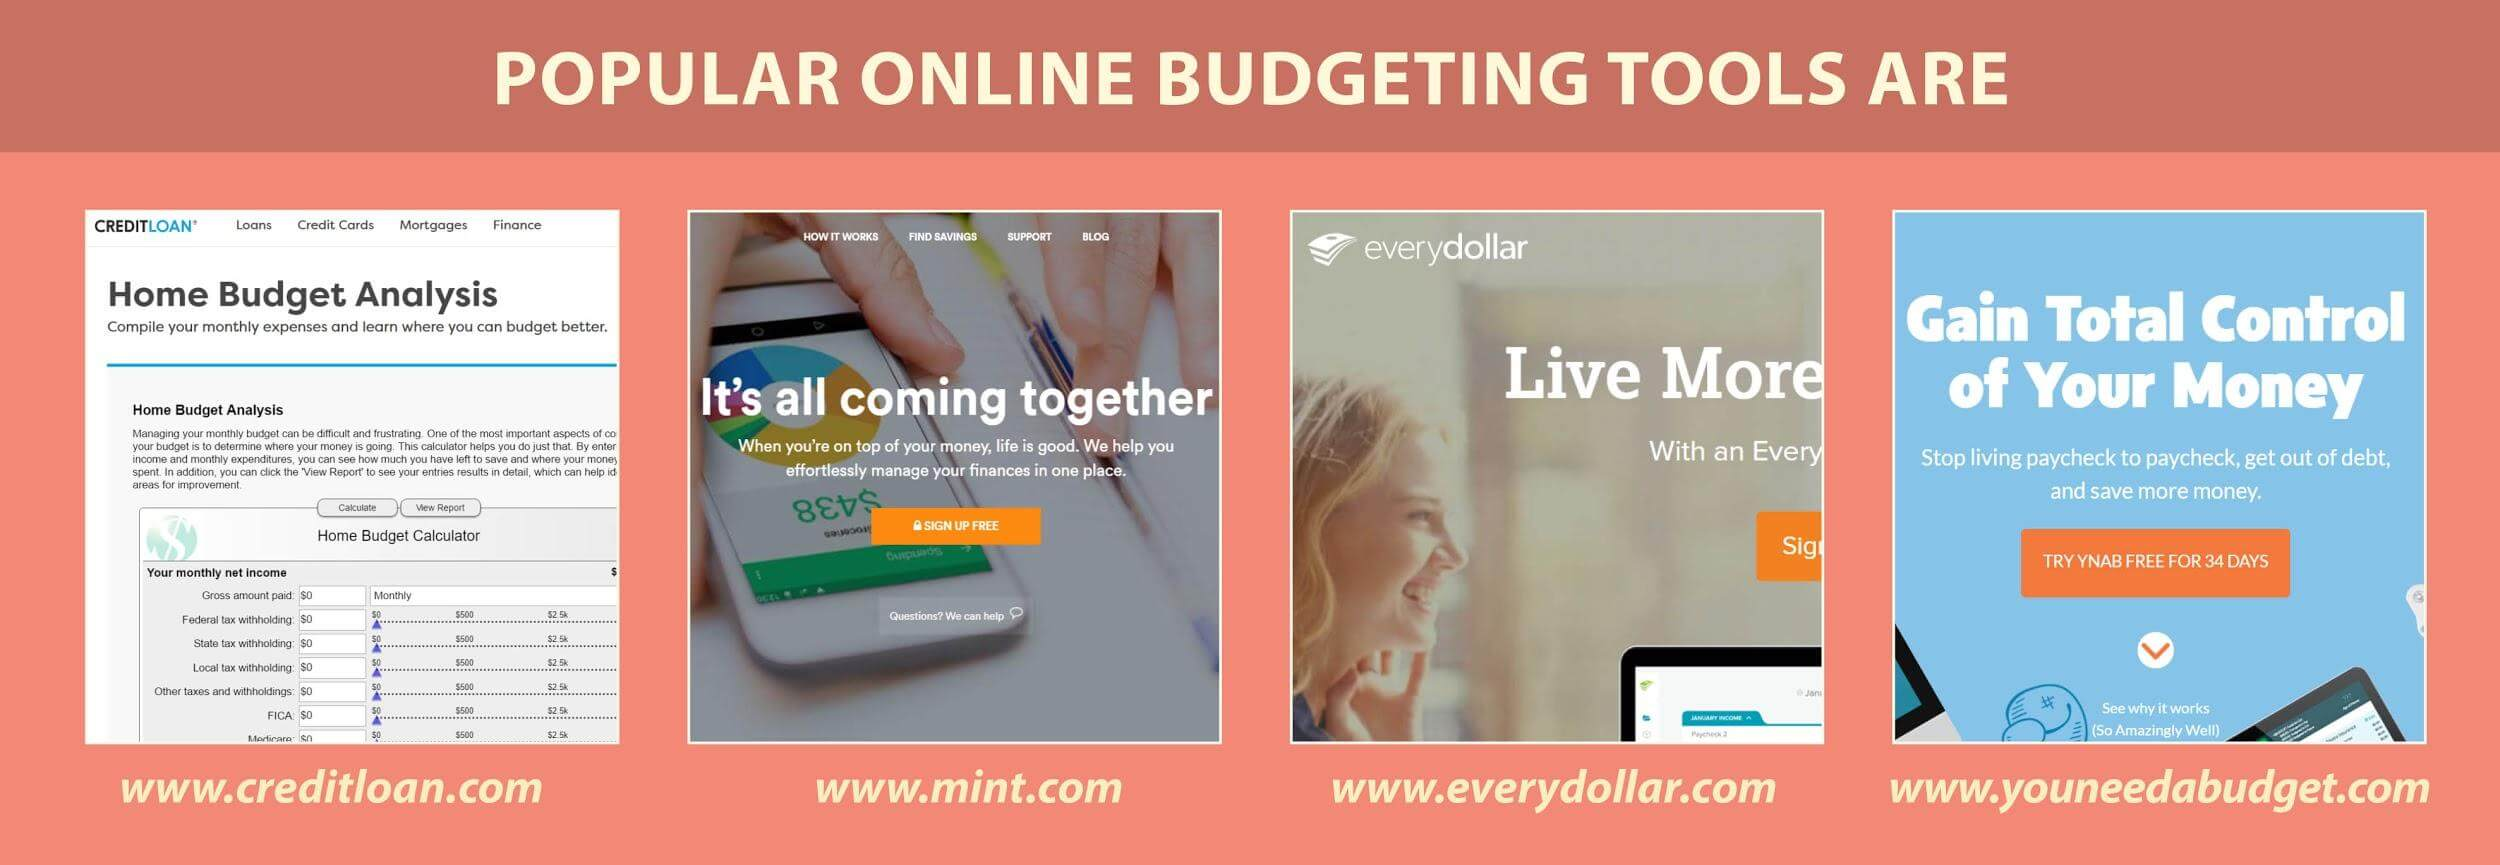 popular online budgeting tools